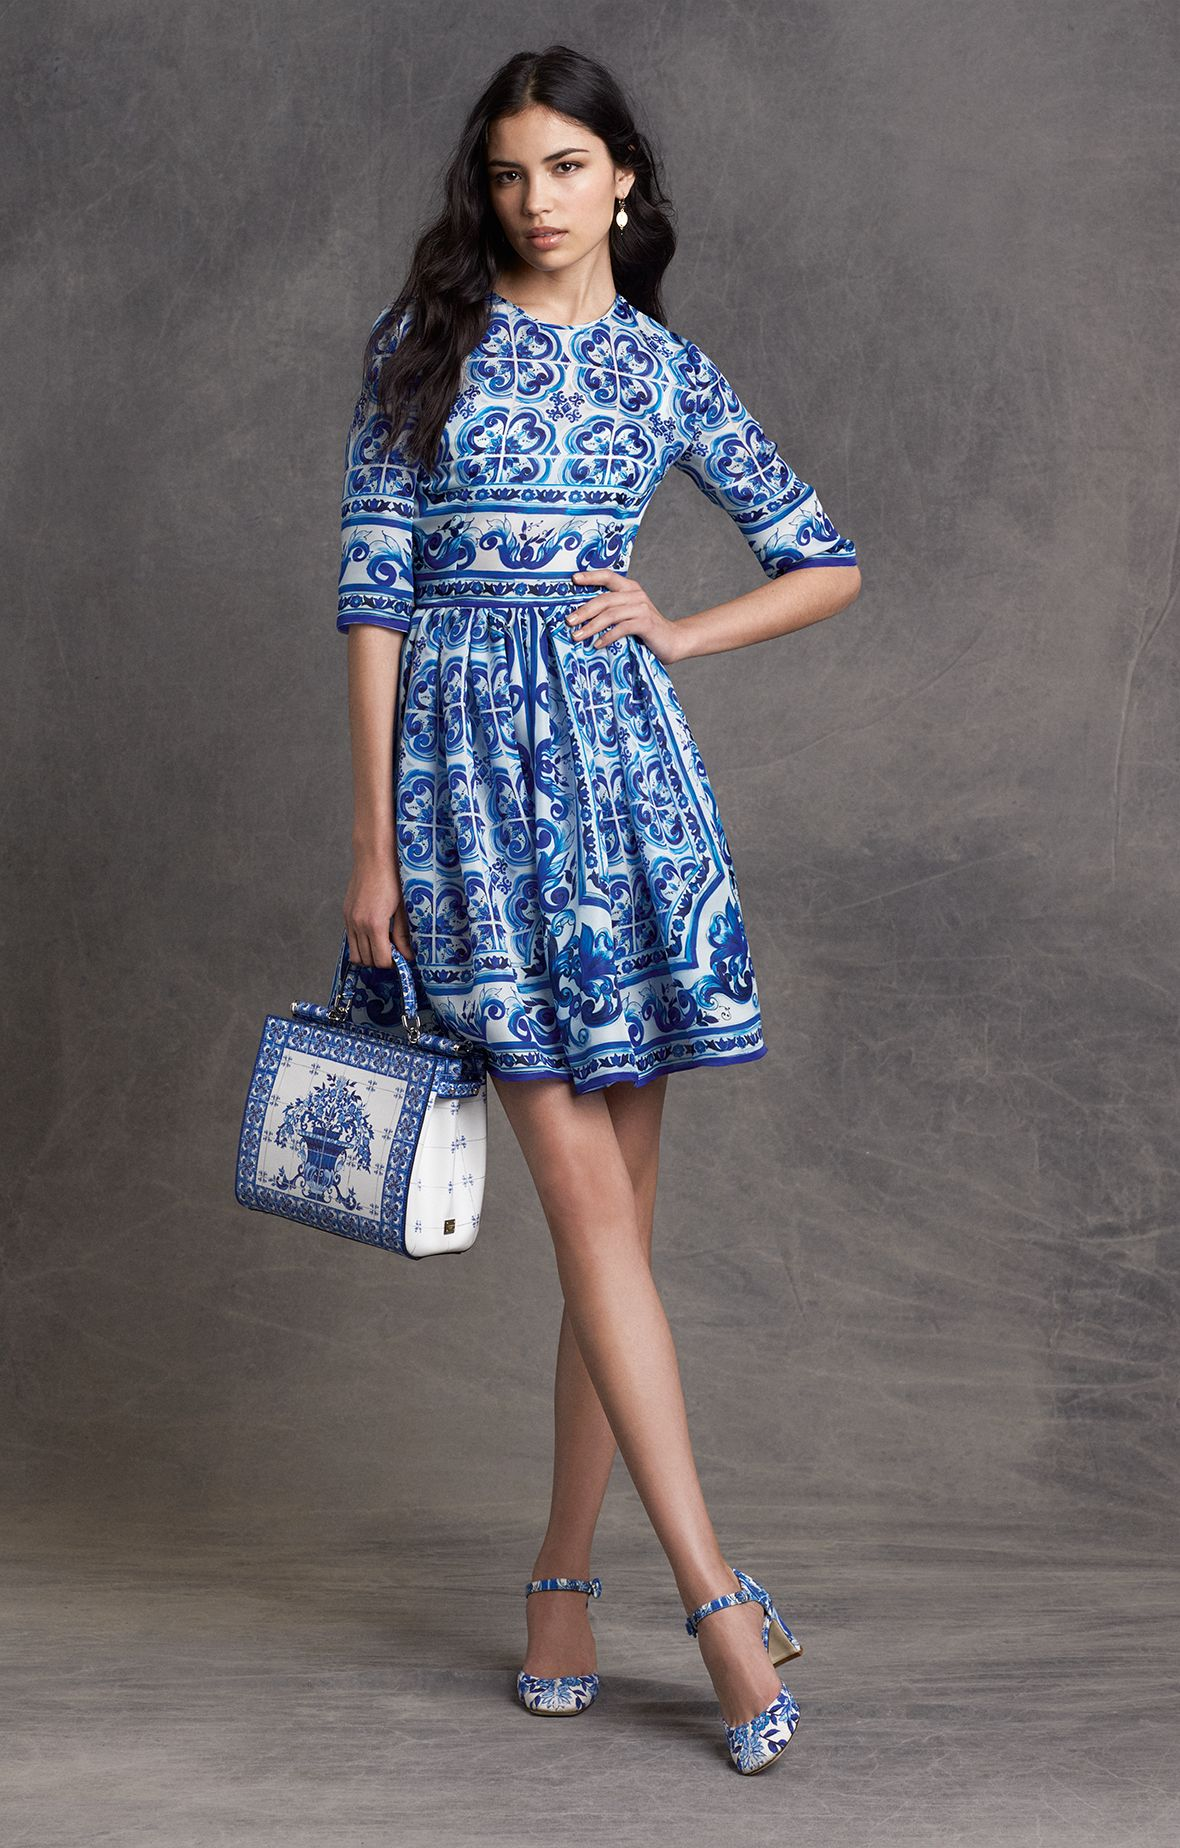 38058e3fc41b7 Discovered this blue and white mosaic D&G dress, inspired by ...